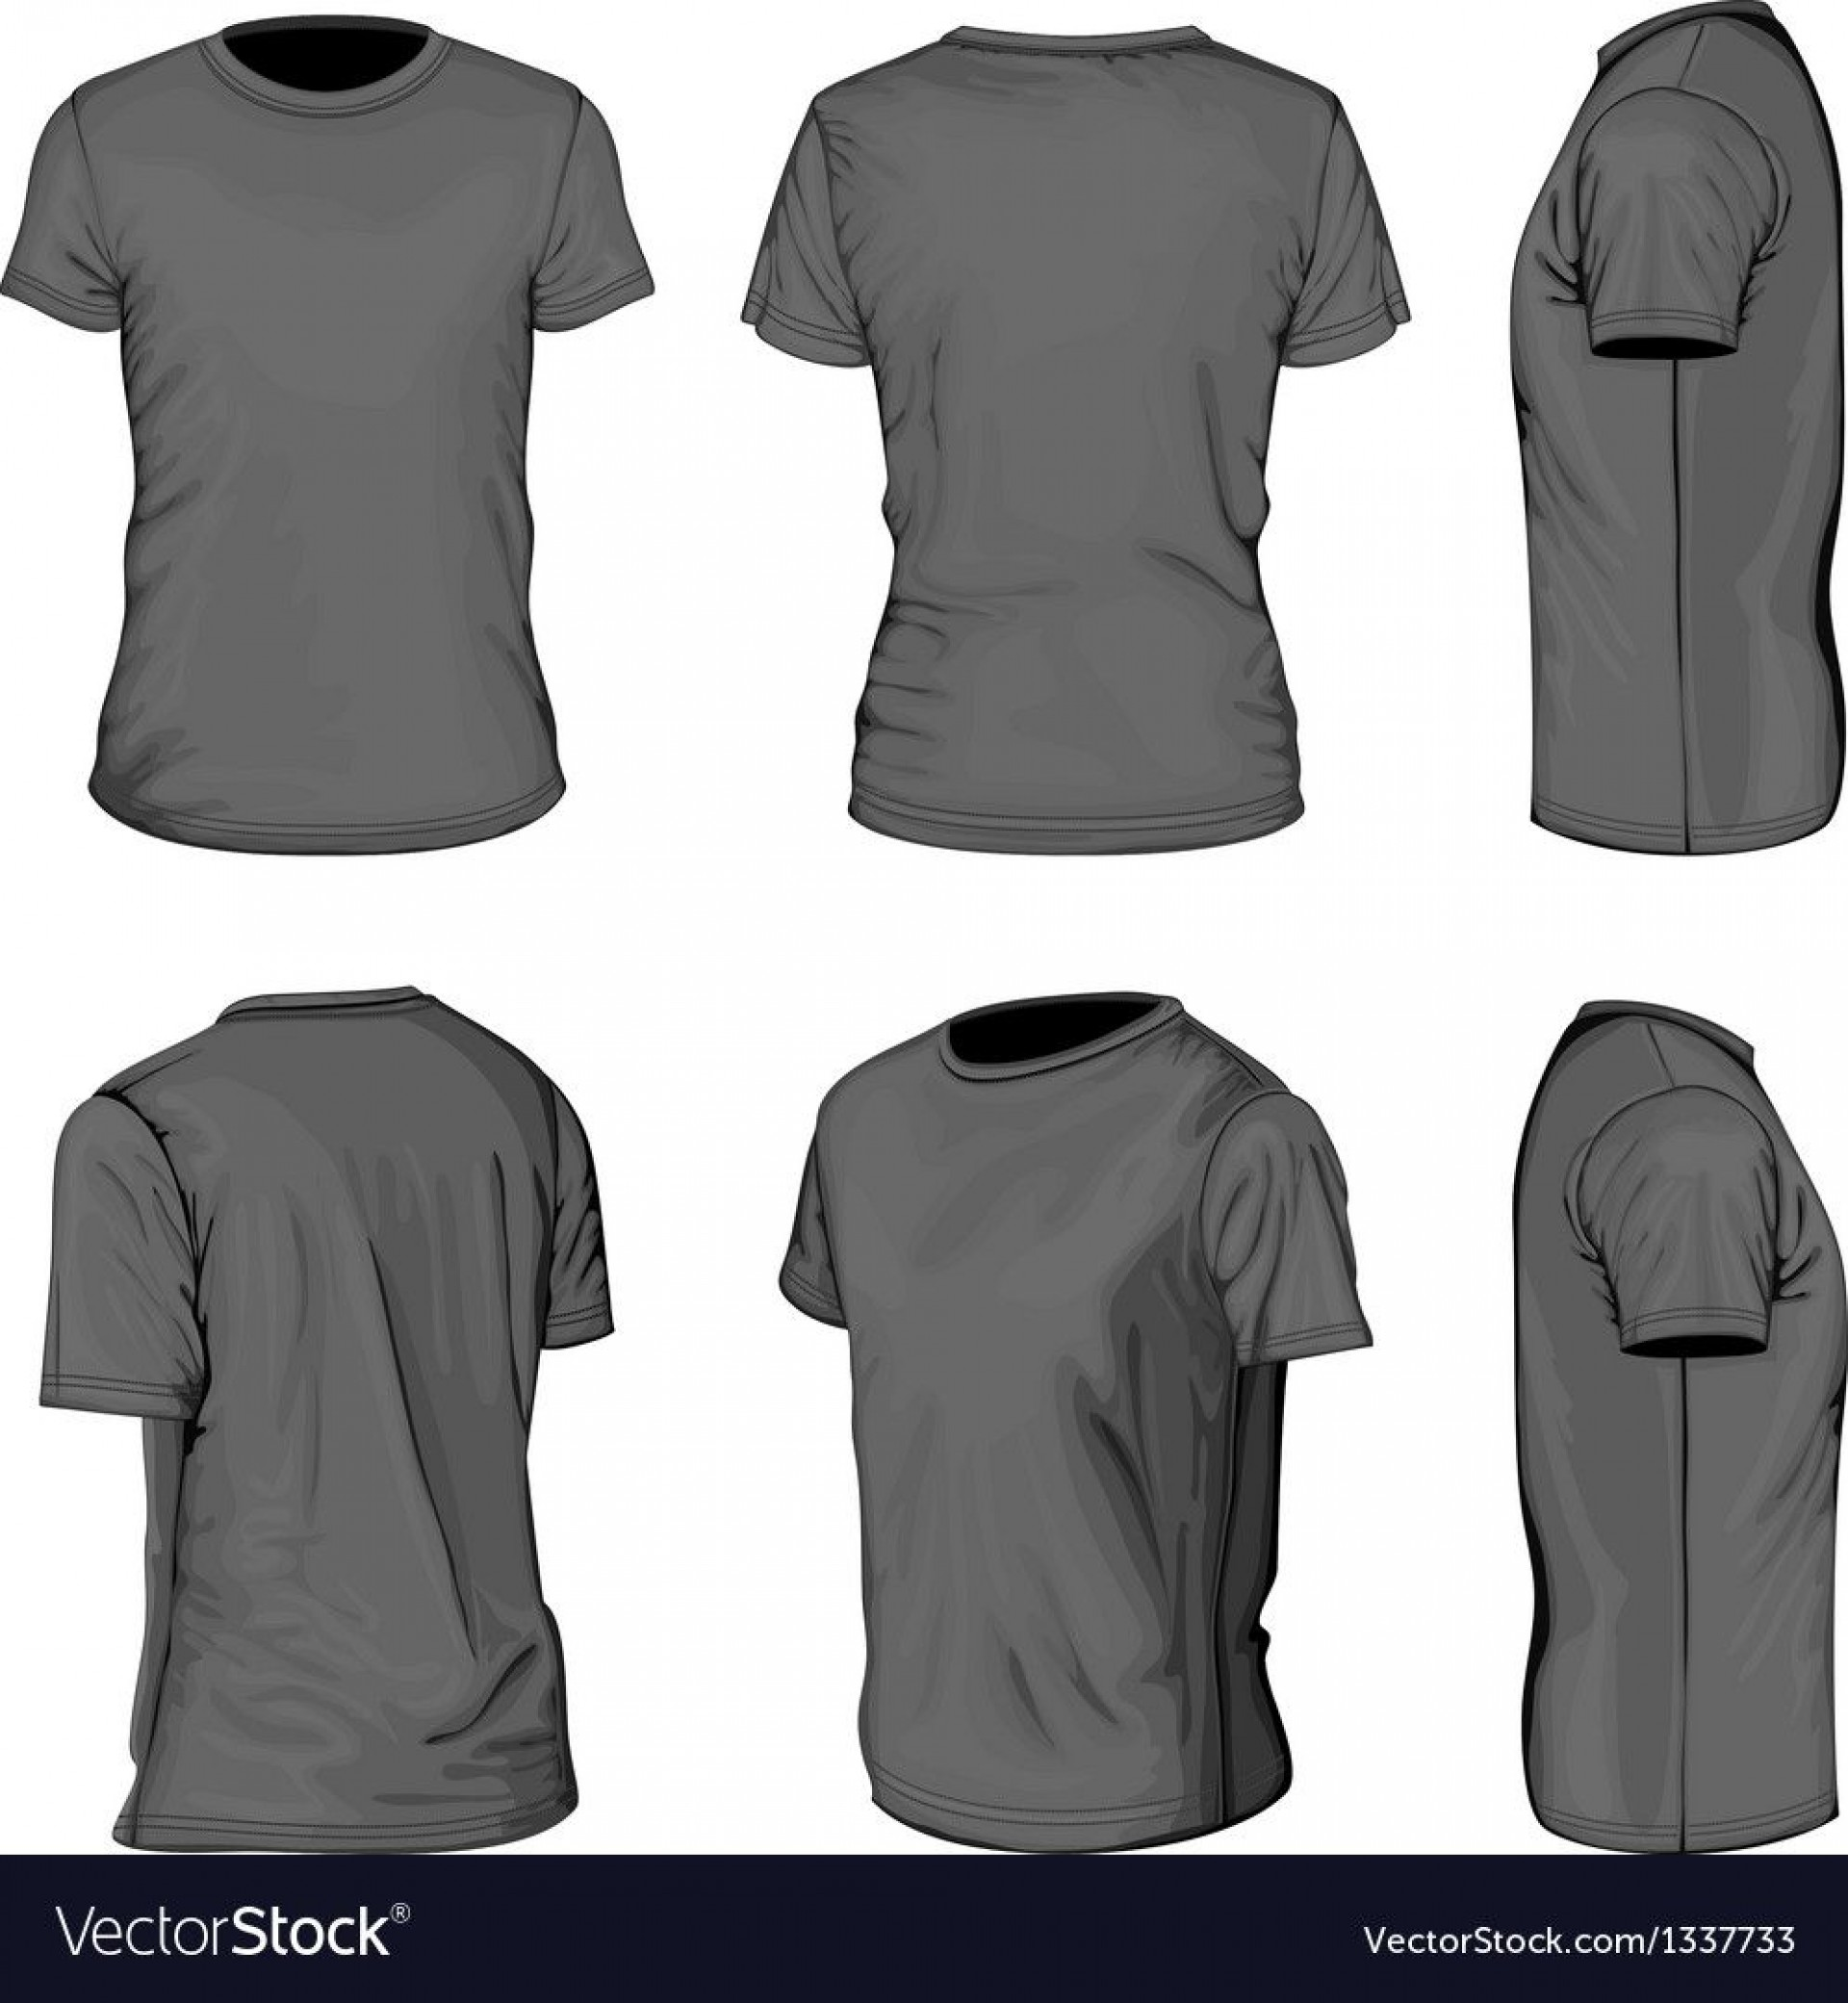 010 Fascinating Tee Shirt Design Template High Def  Templates T Illustrator Free Download Polo Psd1920